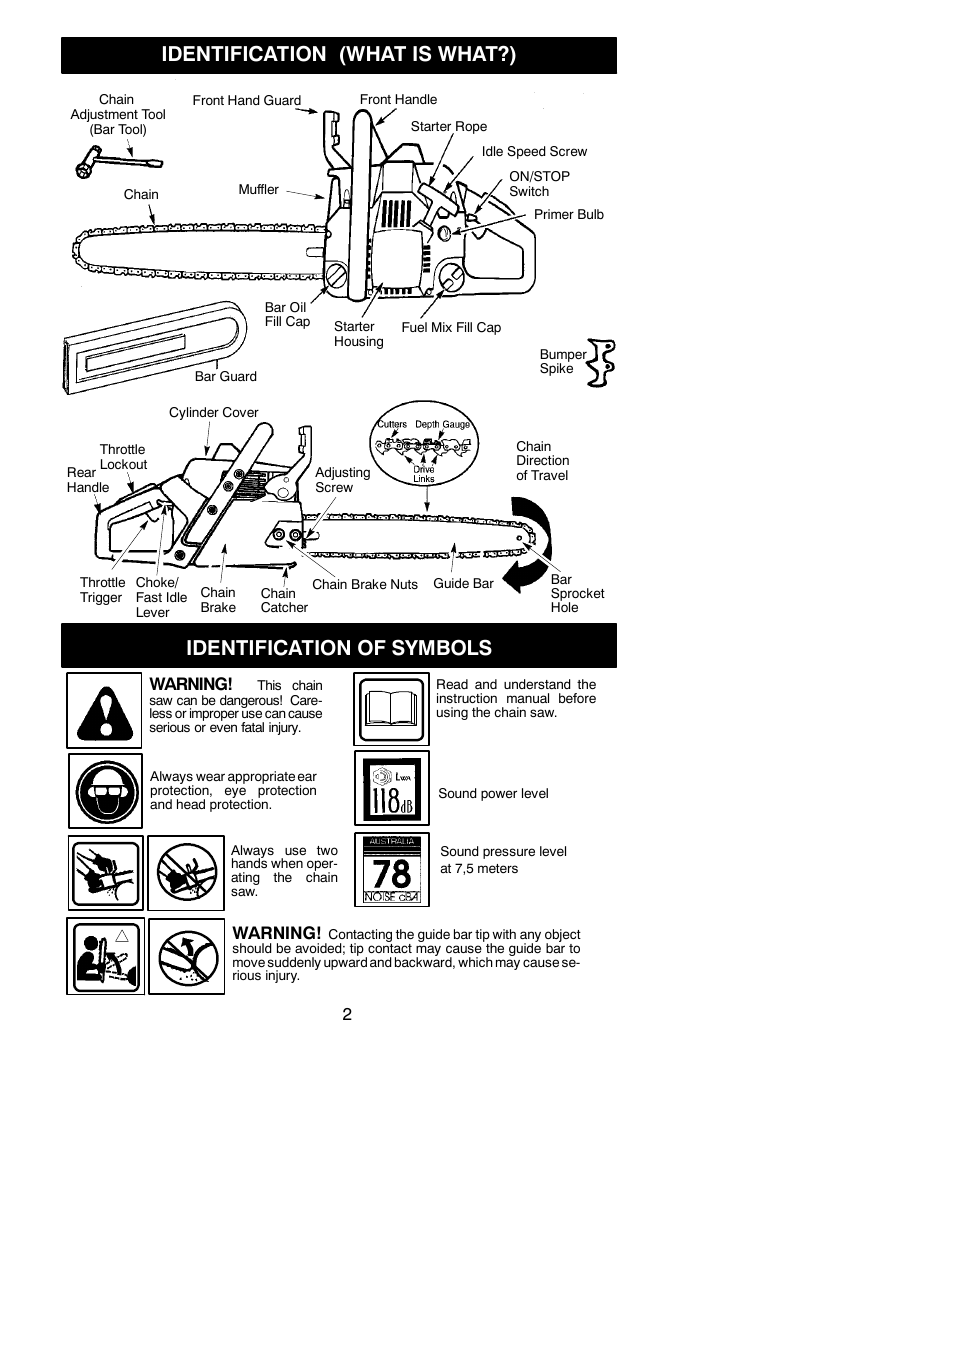 Identification (what is what?), Identification of symbols